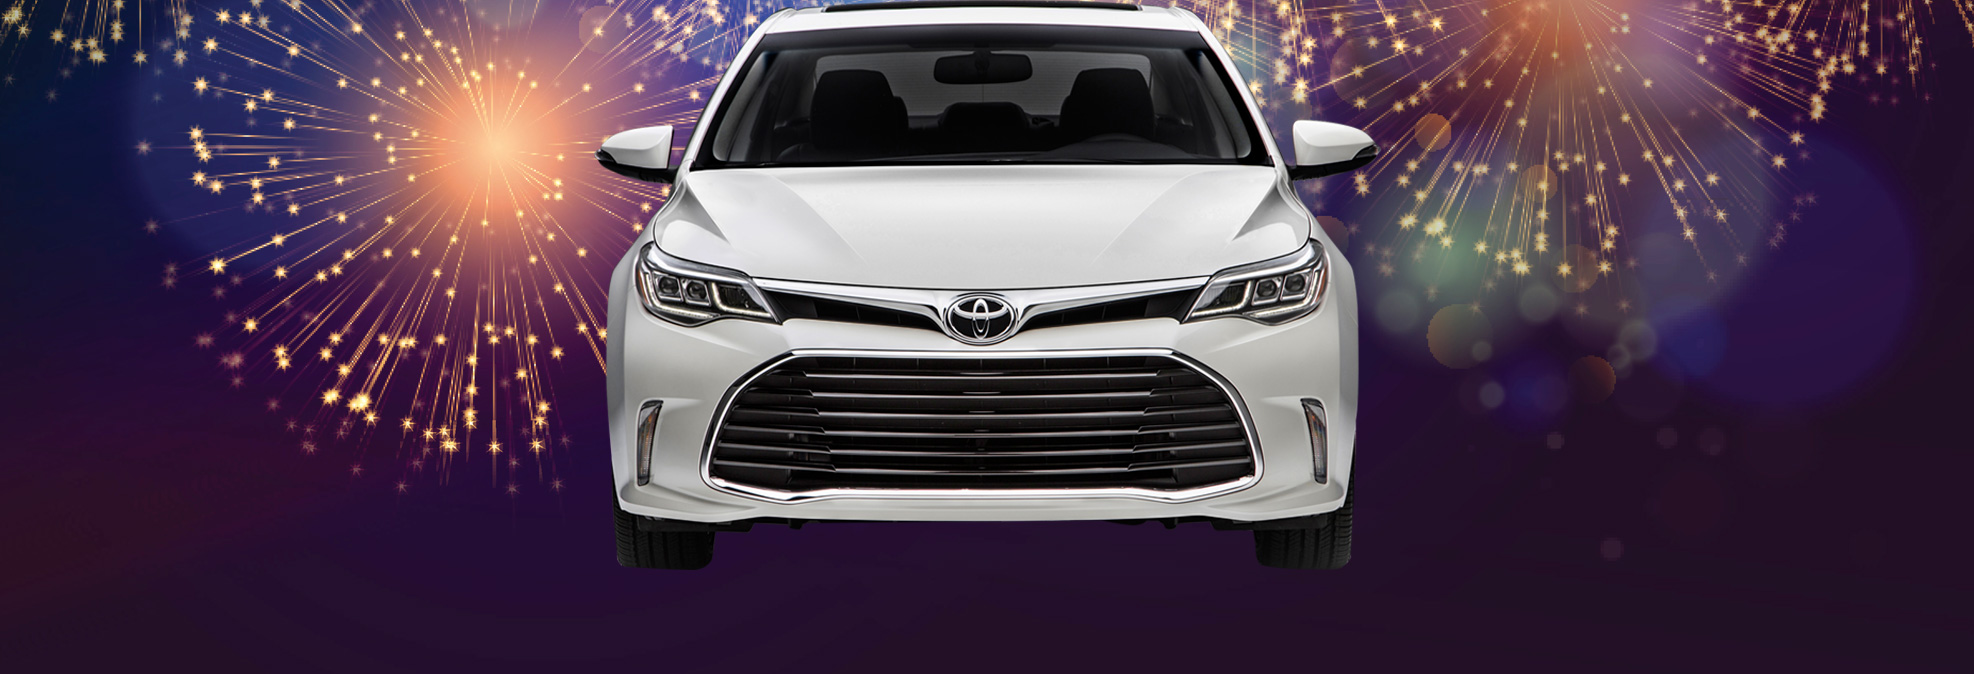 Best deals on cars